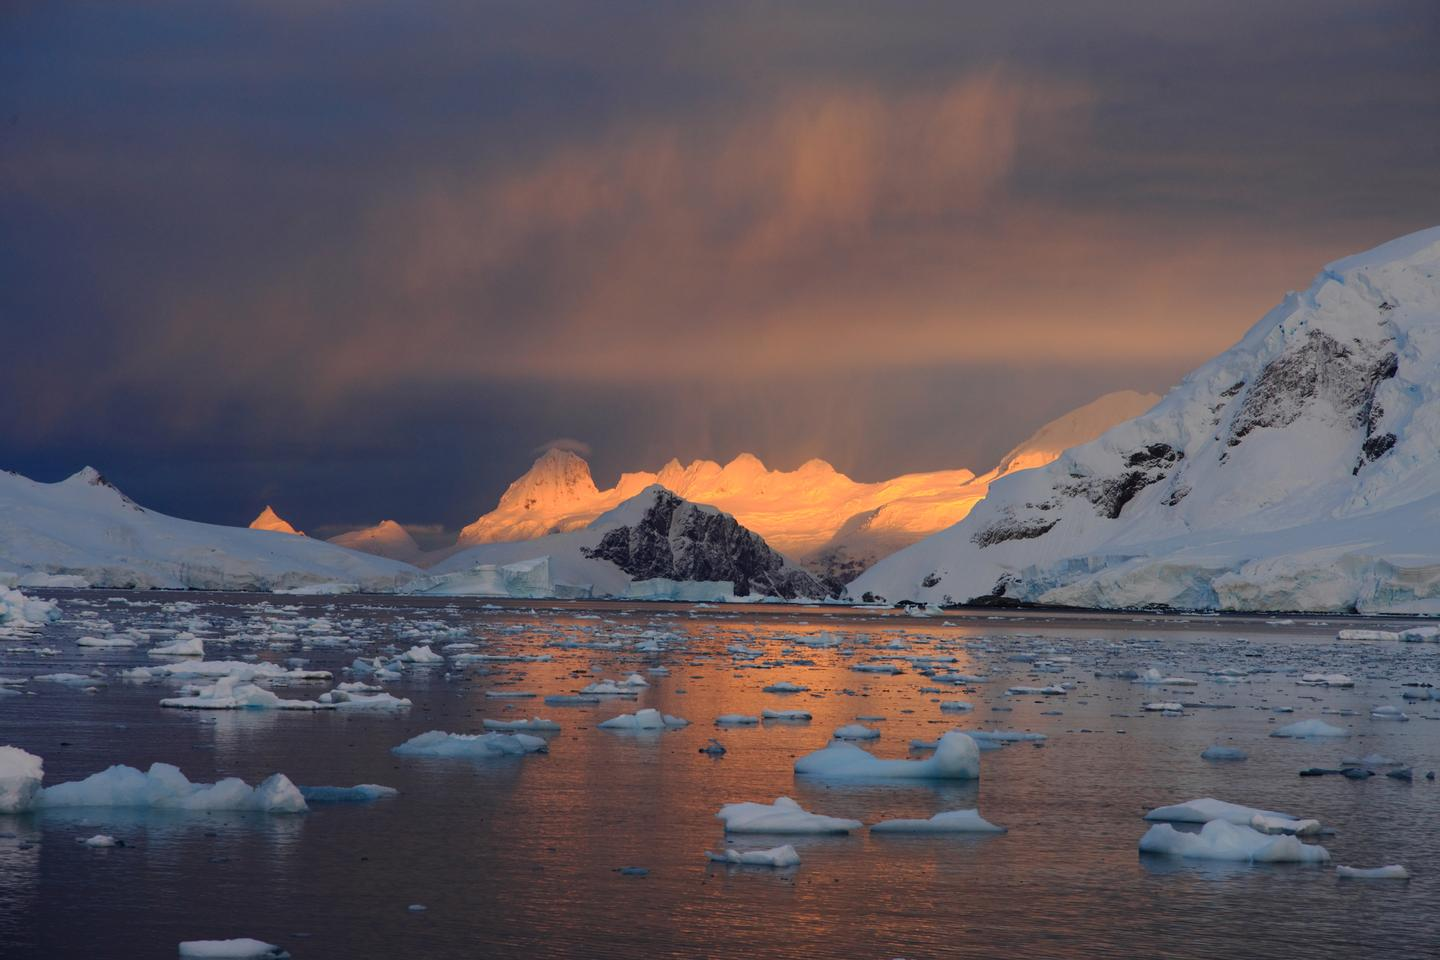 A new study has found recent retreat in the Antarctic ice sheet was related to changes to the ice sheet at the opposite end of the globe